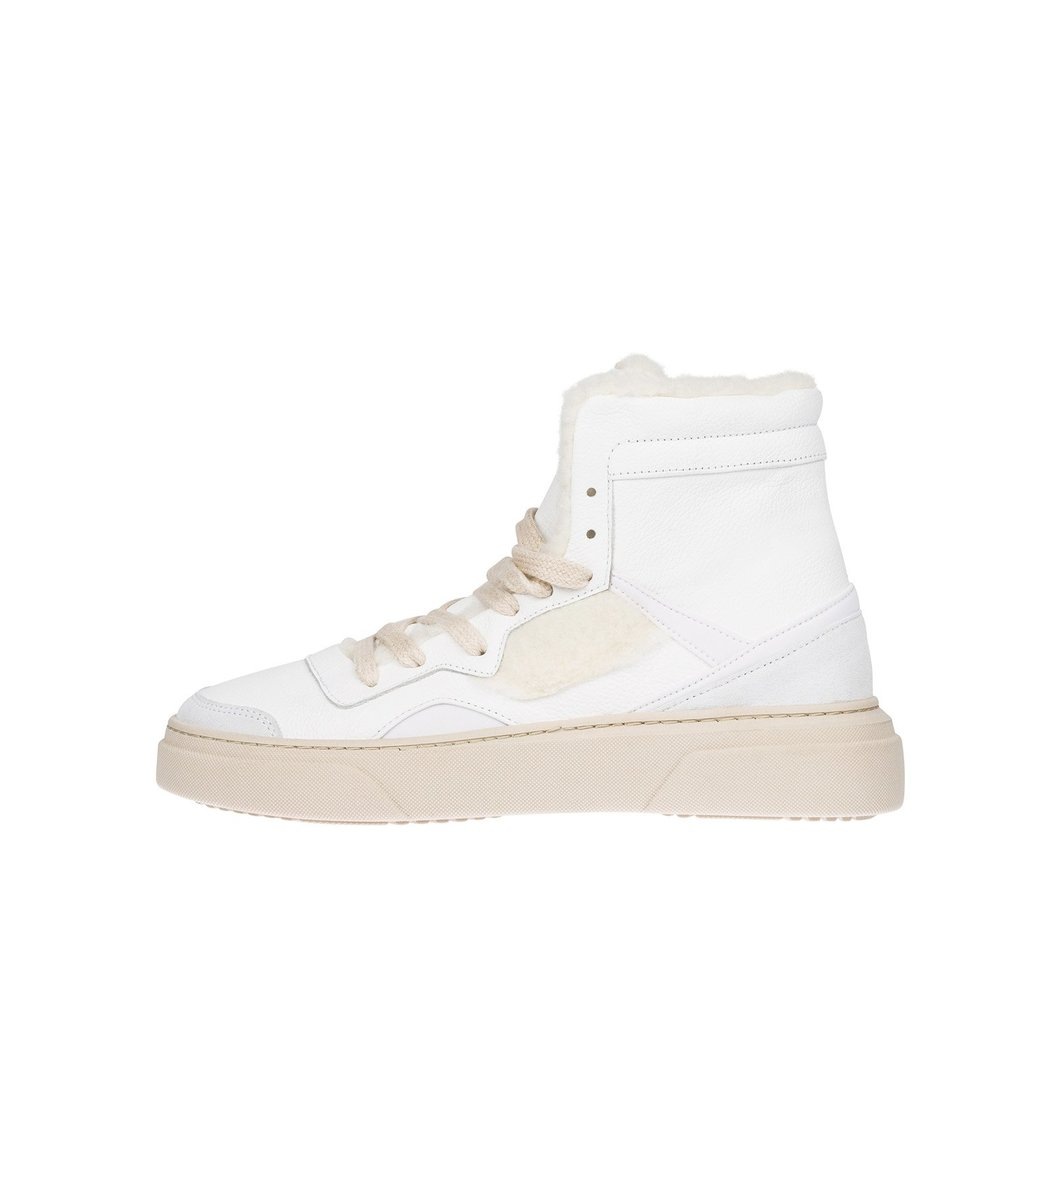 Dorothee Schumacher Sporty Movement High Top Sneaker in Pure White